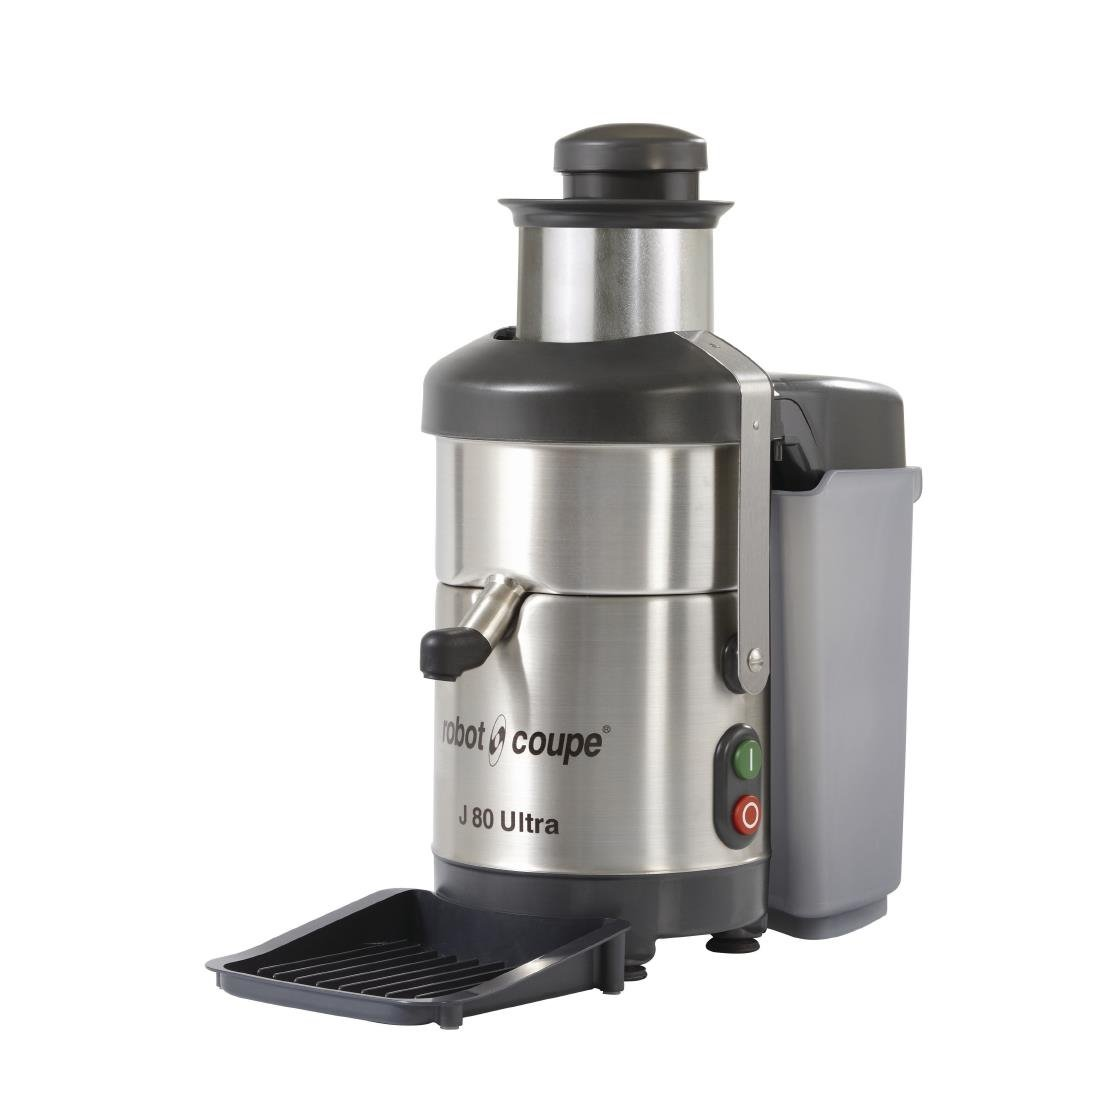 Image of Robot Coupe Automatic Juicer J80 Ultra